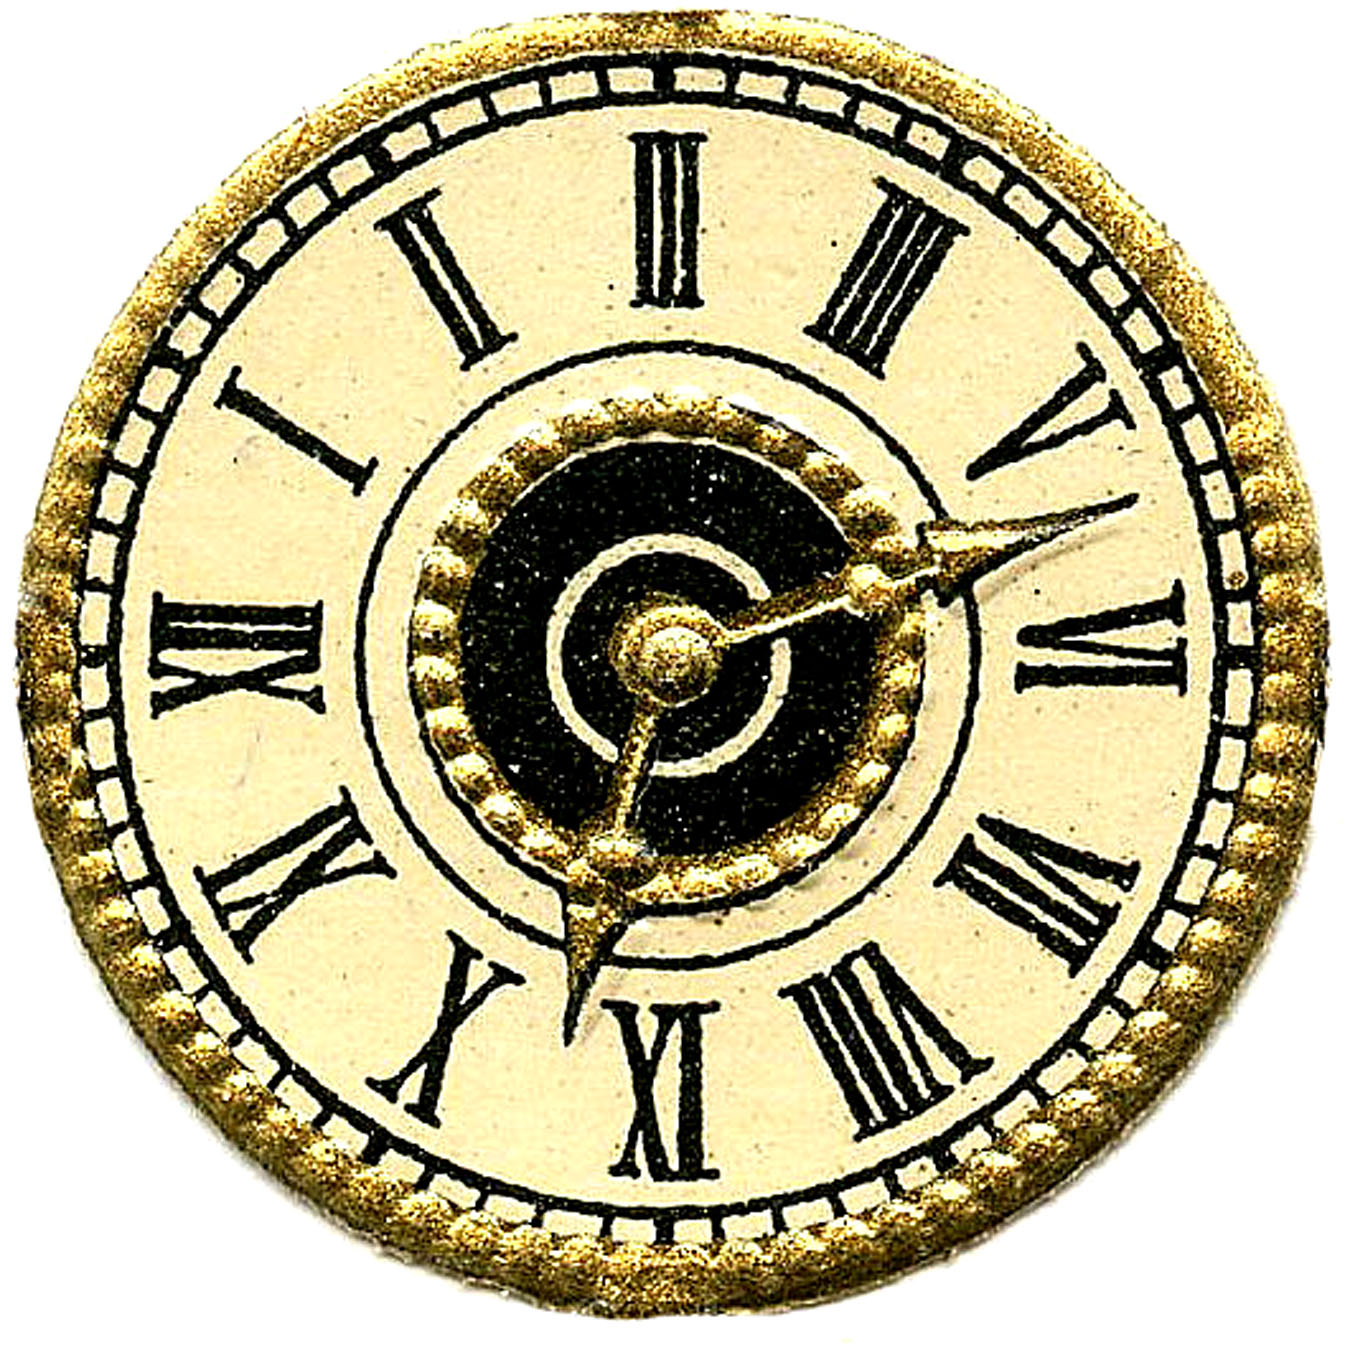 Pin Clock Face Clipart - Logos With A Clock - Free Transparent PNG Clipart  Images Download